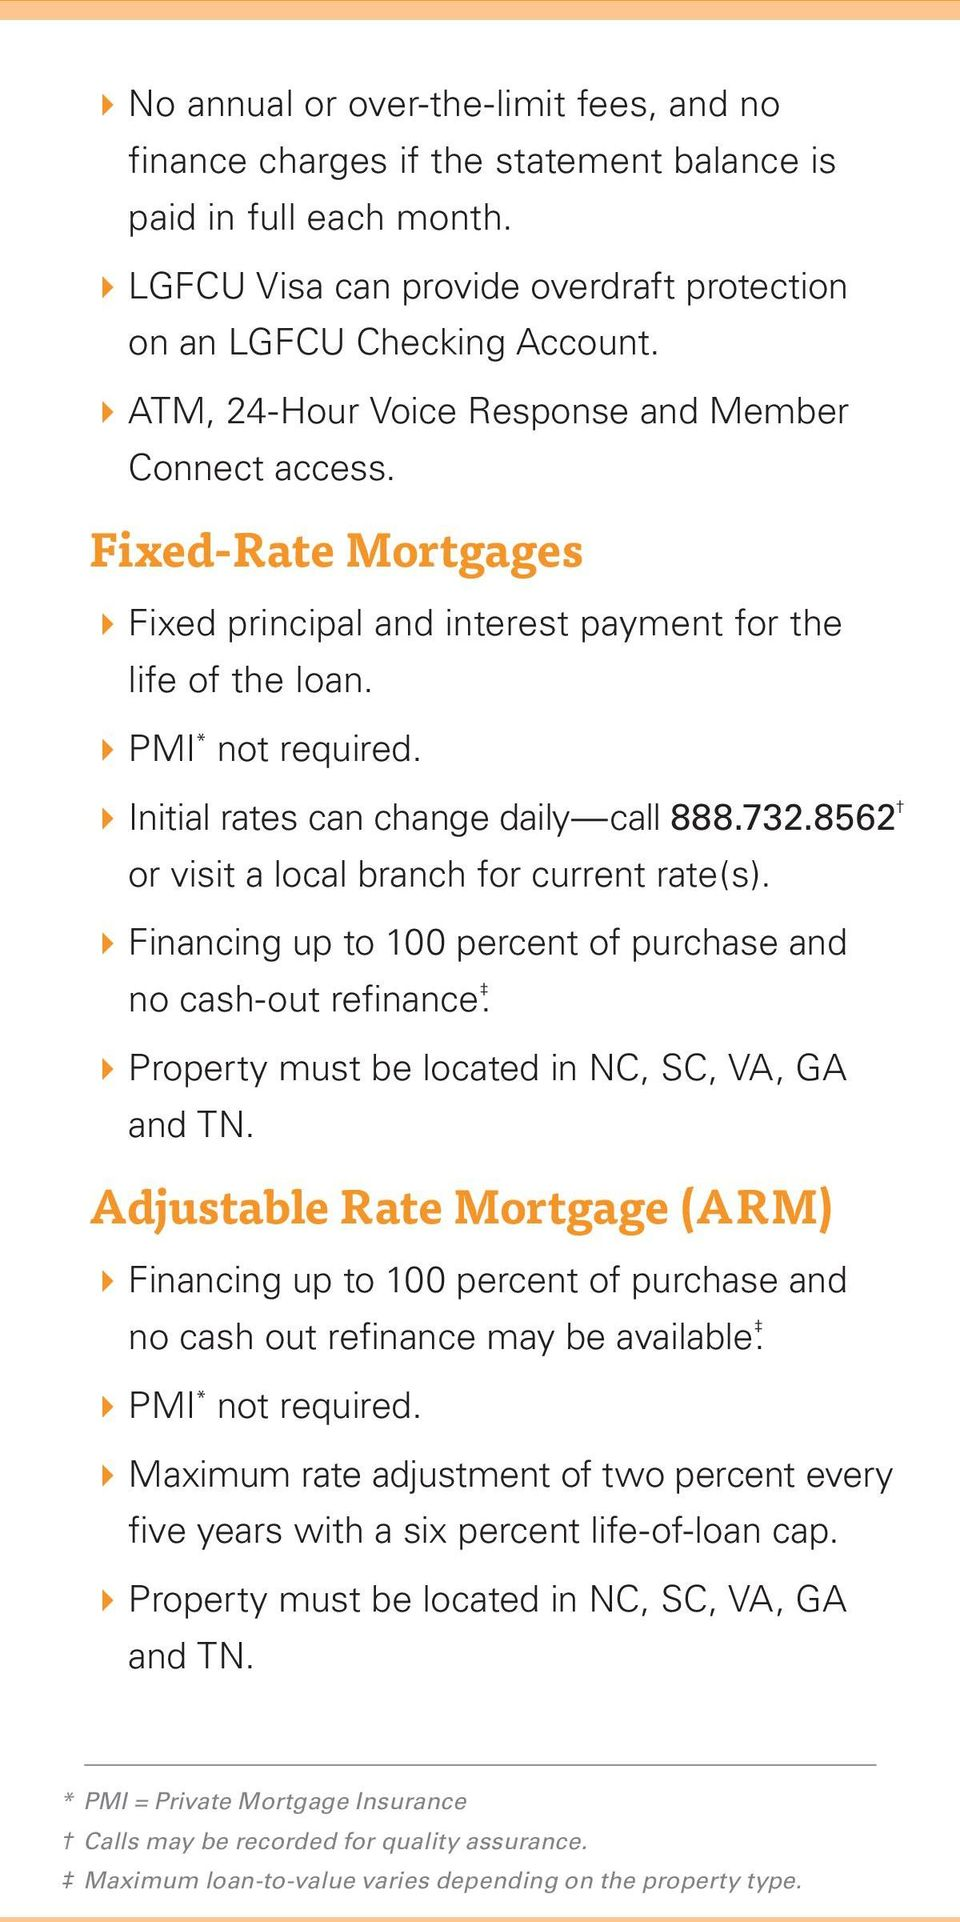 4Initial rates can change daily call 888.732.8562 or visit a local branch for current rate(s). 4Financing up to 100 percent of purchase and no cash-out refinance.